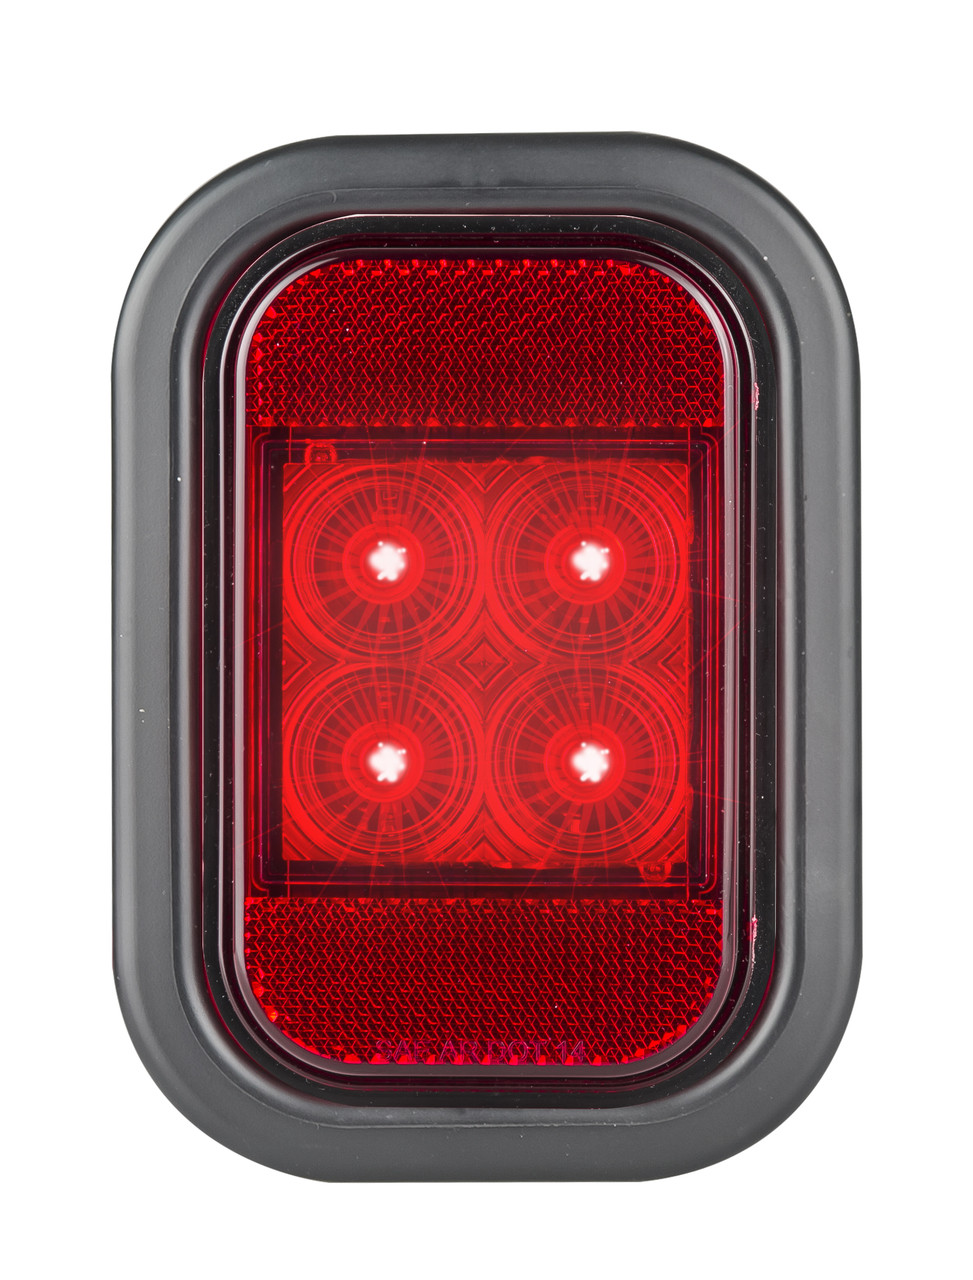 Active - 133RMG - Stop Tail Light with Reflector, Rectangle. Multi-volt Single Pack. AL. Ultimate LED.